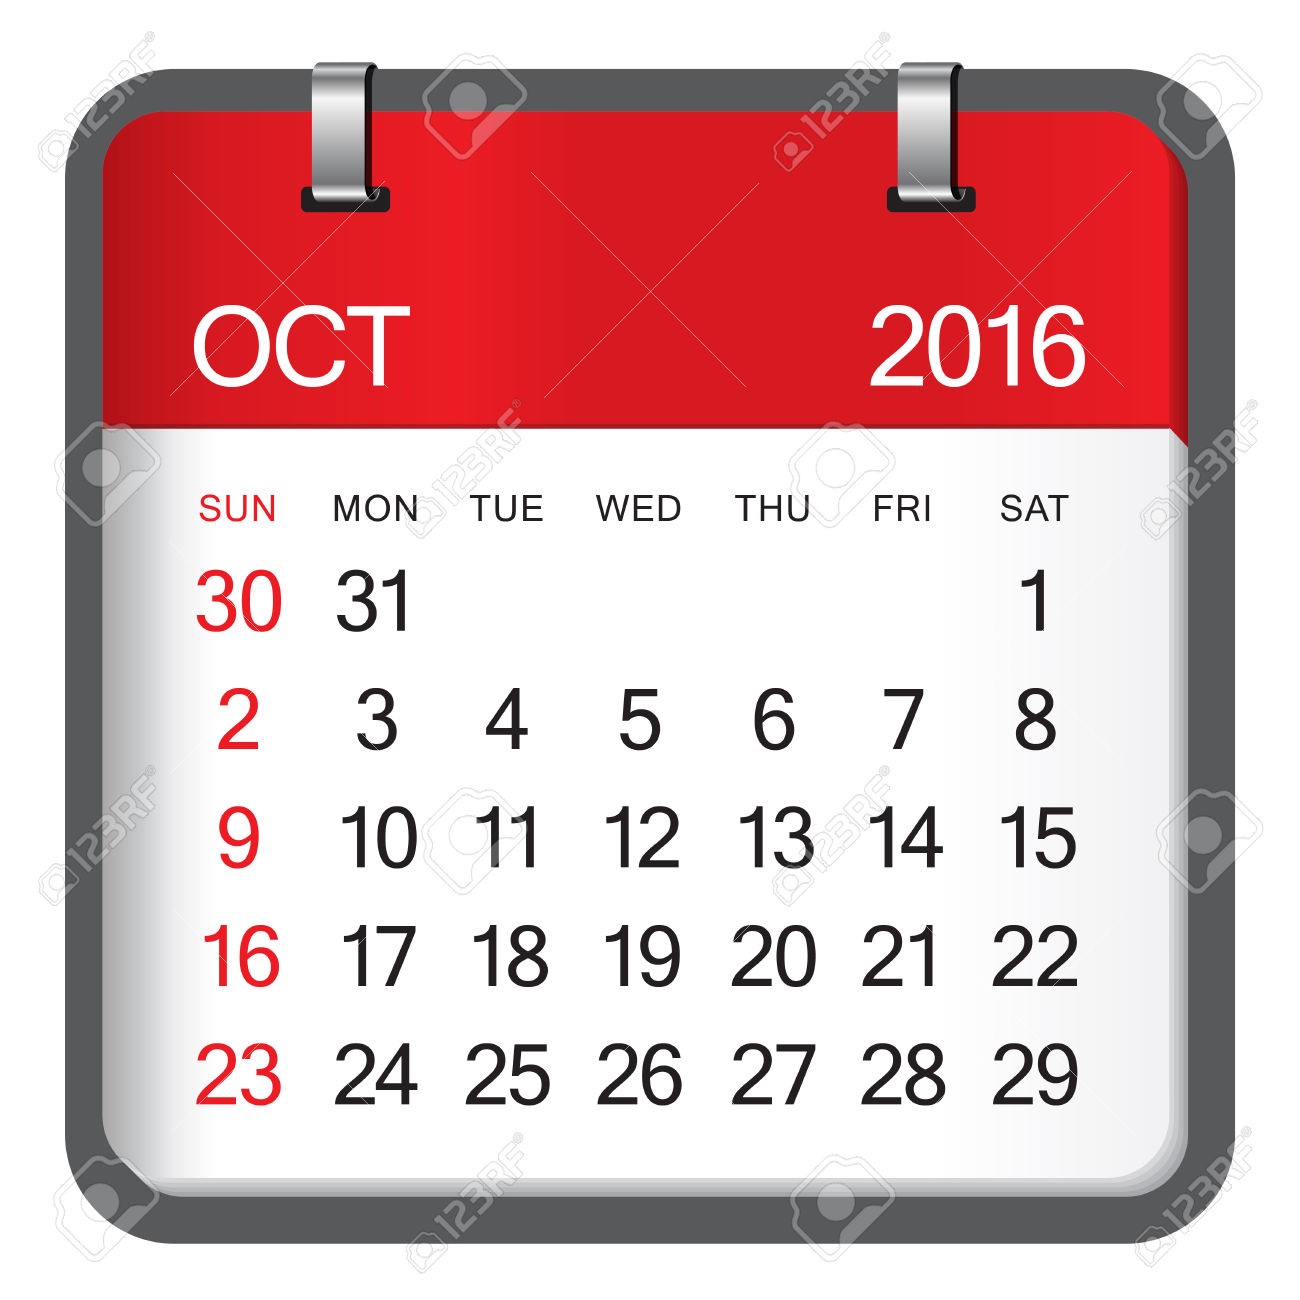 Clipart for october 2016 calendar.  stock vector illustration